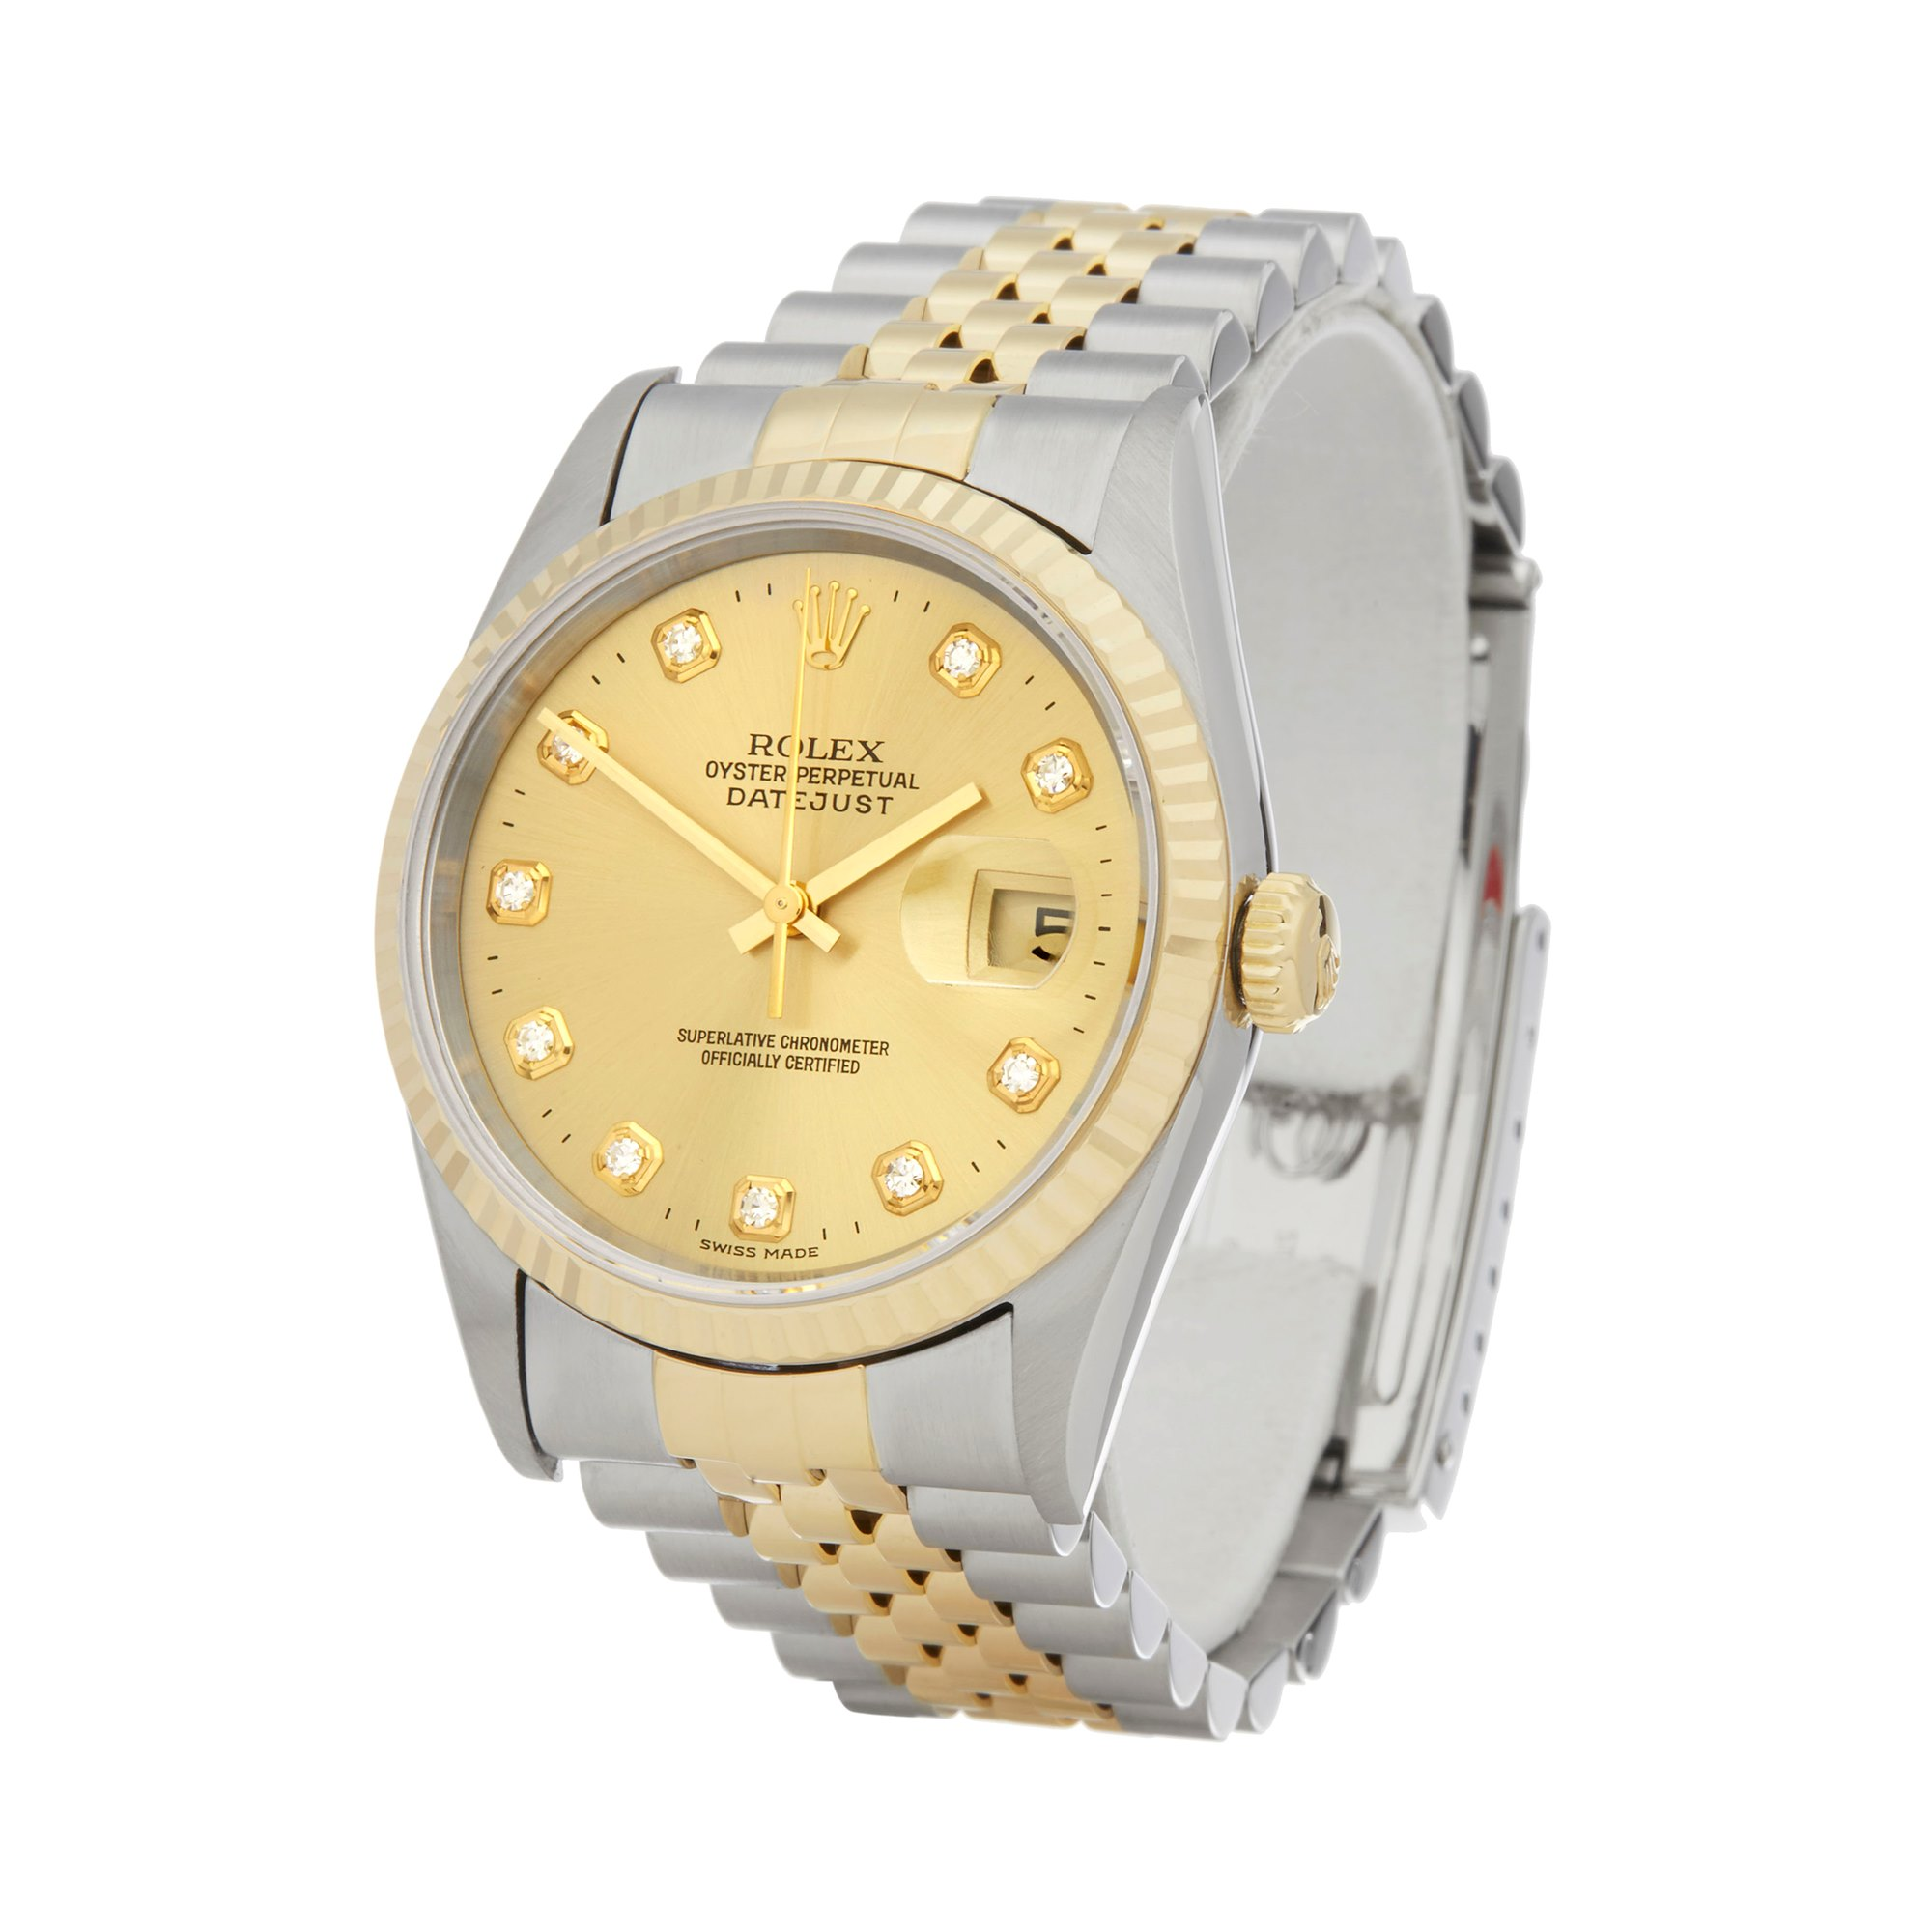 Rolex Datejust Diamond Stainless Steel & Yellow Gold 16233